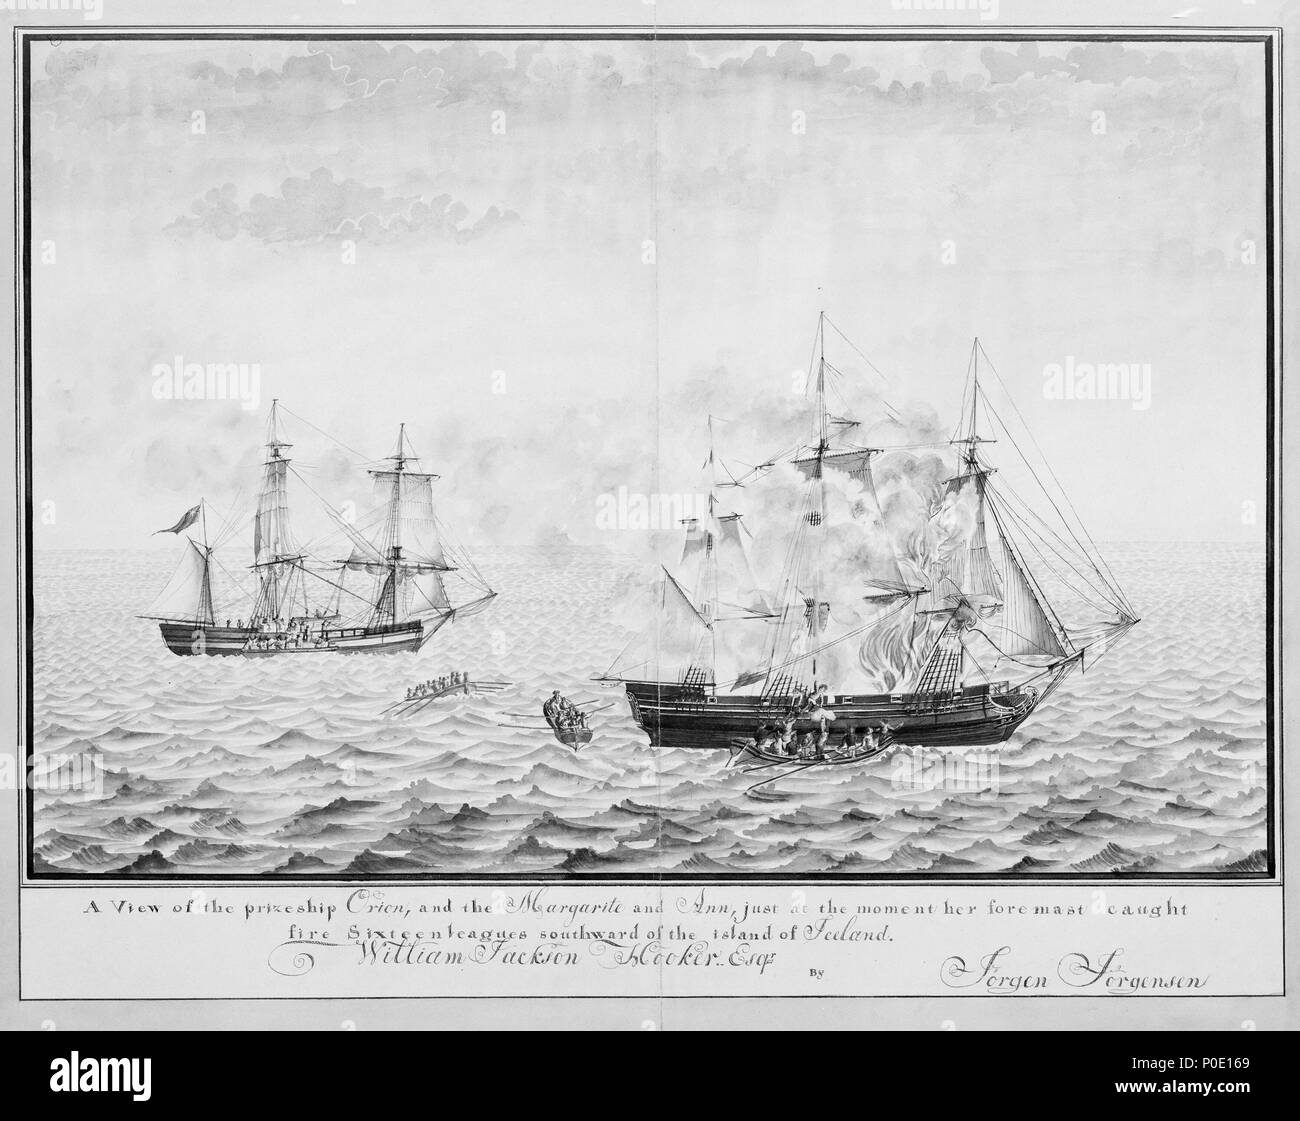 .  English: A View of the prize ship Orion and the Margarite and Ann just at the moment her foremast caught fire Sixteen leagues southward of the island of Iceland, 1808? original art: drawing View of the prize ship Orion and the Margarite and Ann just at the moment her foremast caught fire Sixteen leagues southward of the island of Iceland, 1808?  . 1808. Jorgensen, Jorgen (artist) 243 A View of the prize ship Orion and the Margarite and Ann just at the moment her foremast caught fire Sixteen leagues southward of the island of Iceland, 1808  RMG B7482 - Stock Image